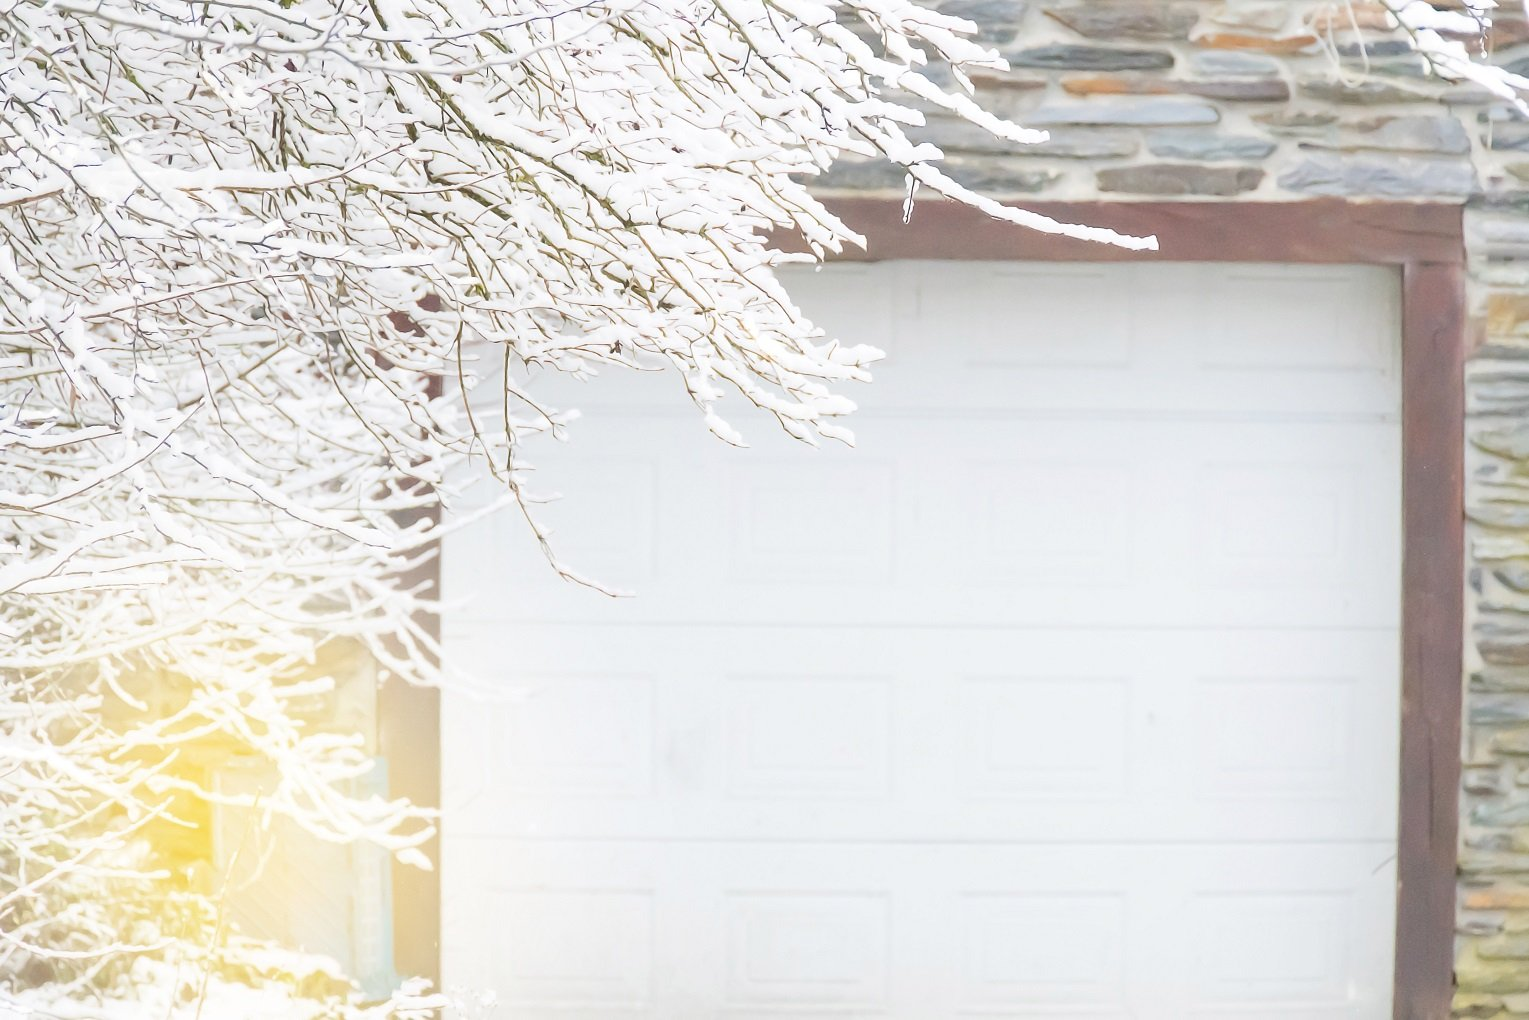 Non focus scene winter season with branch of tree cover with white snow with background background door of garage and brick wall best time for garage door maintenance